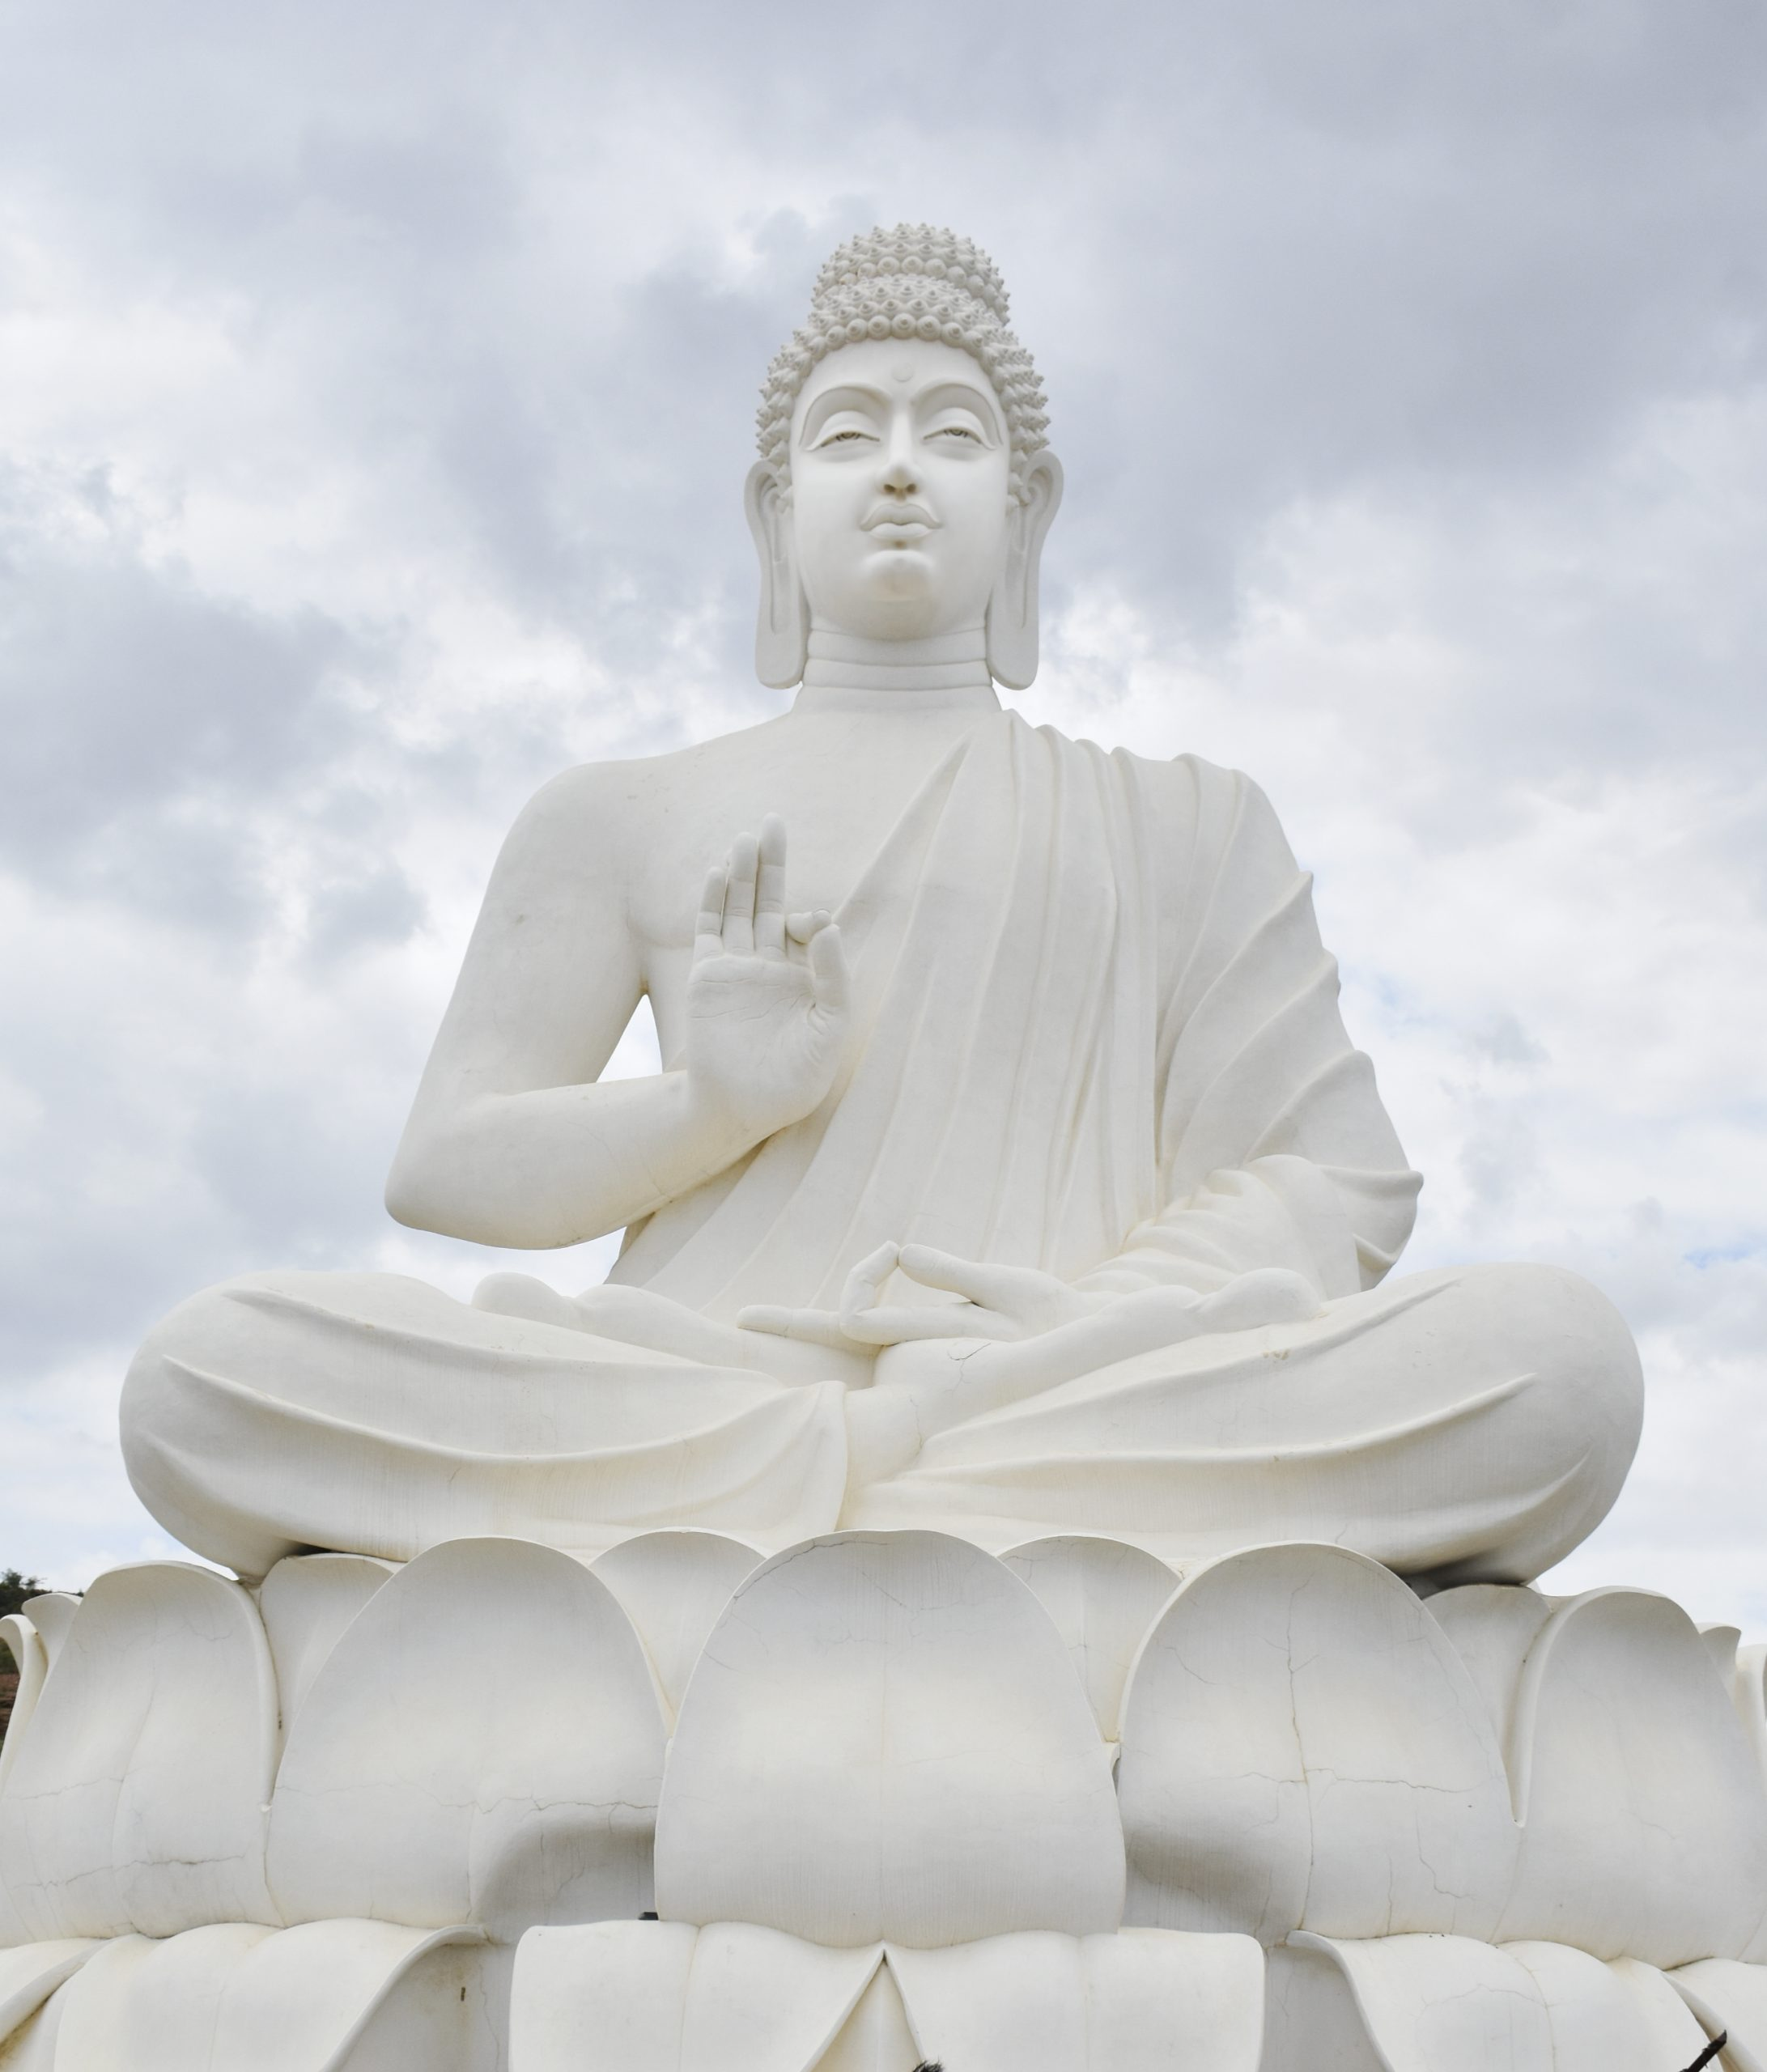 A giant statue of a Buddha